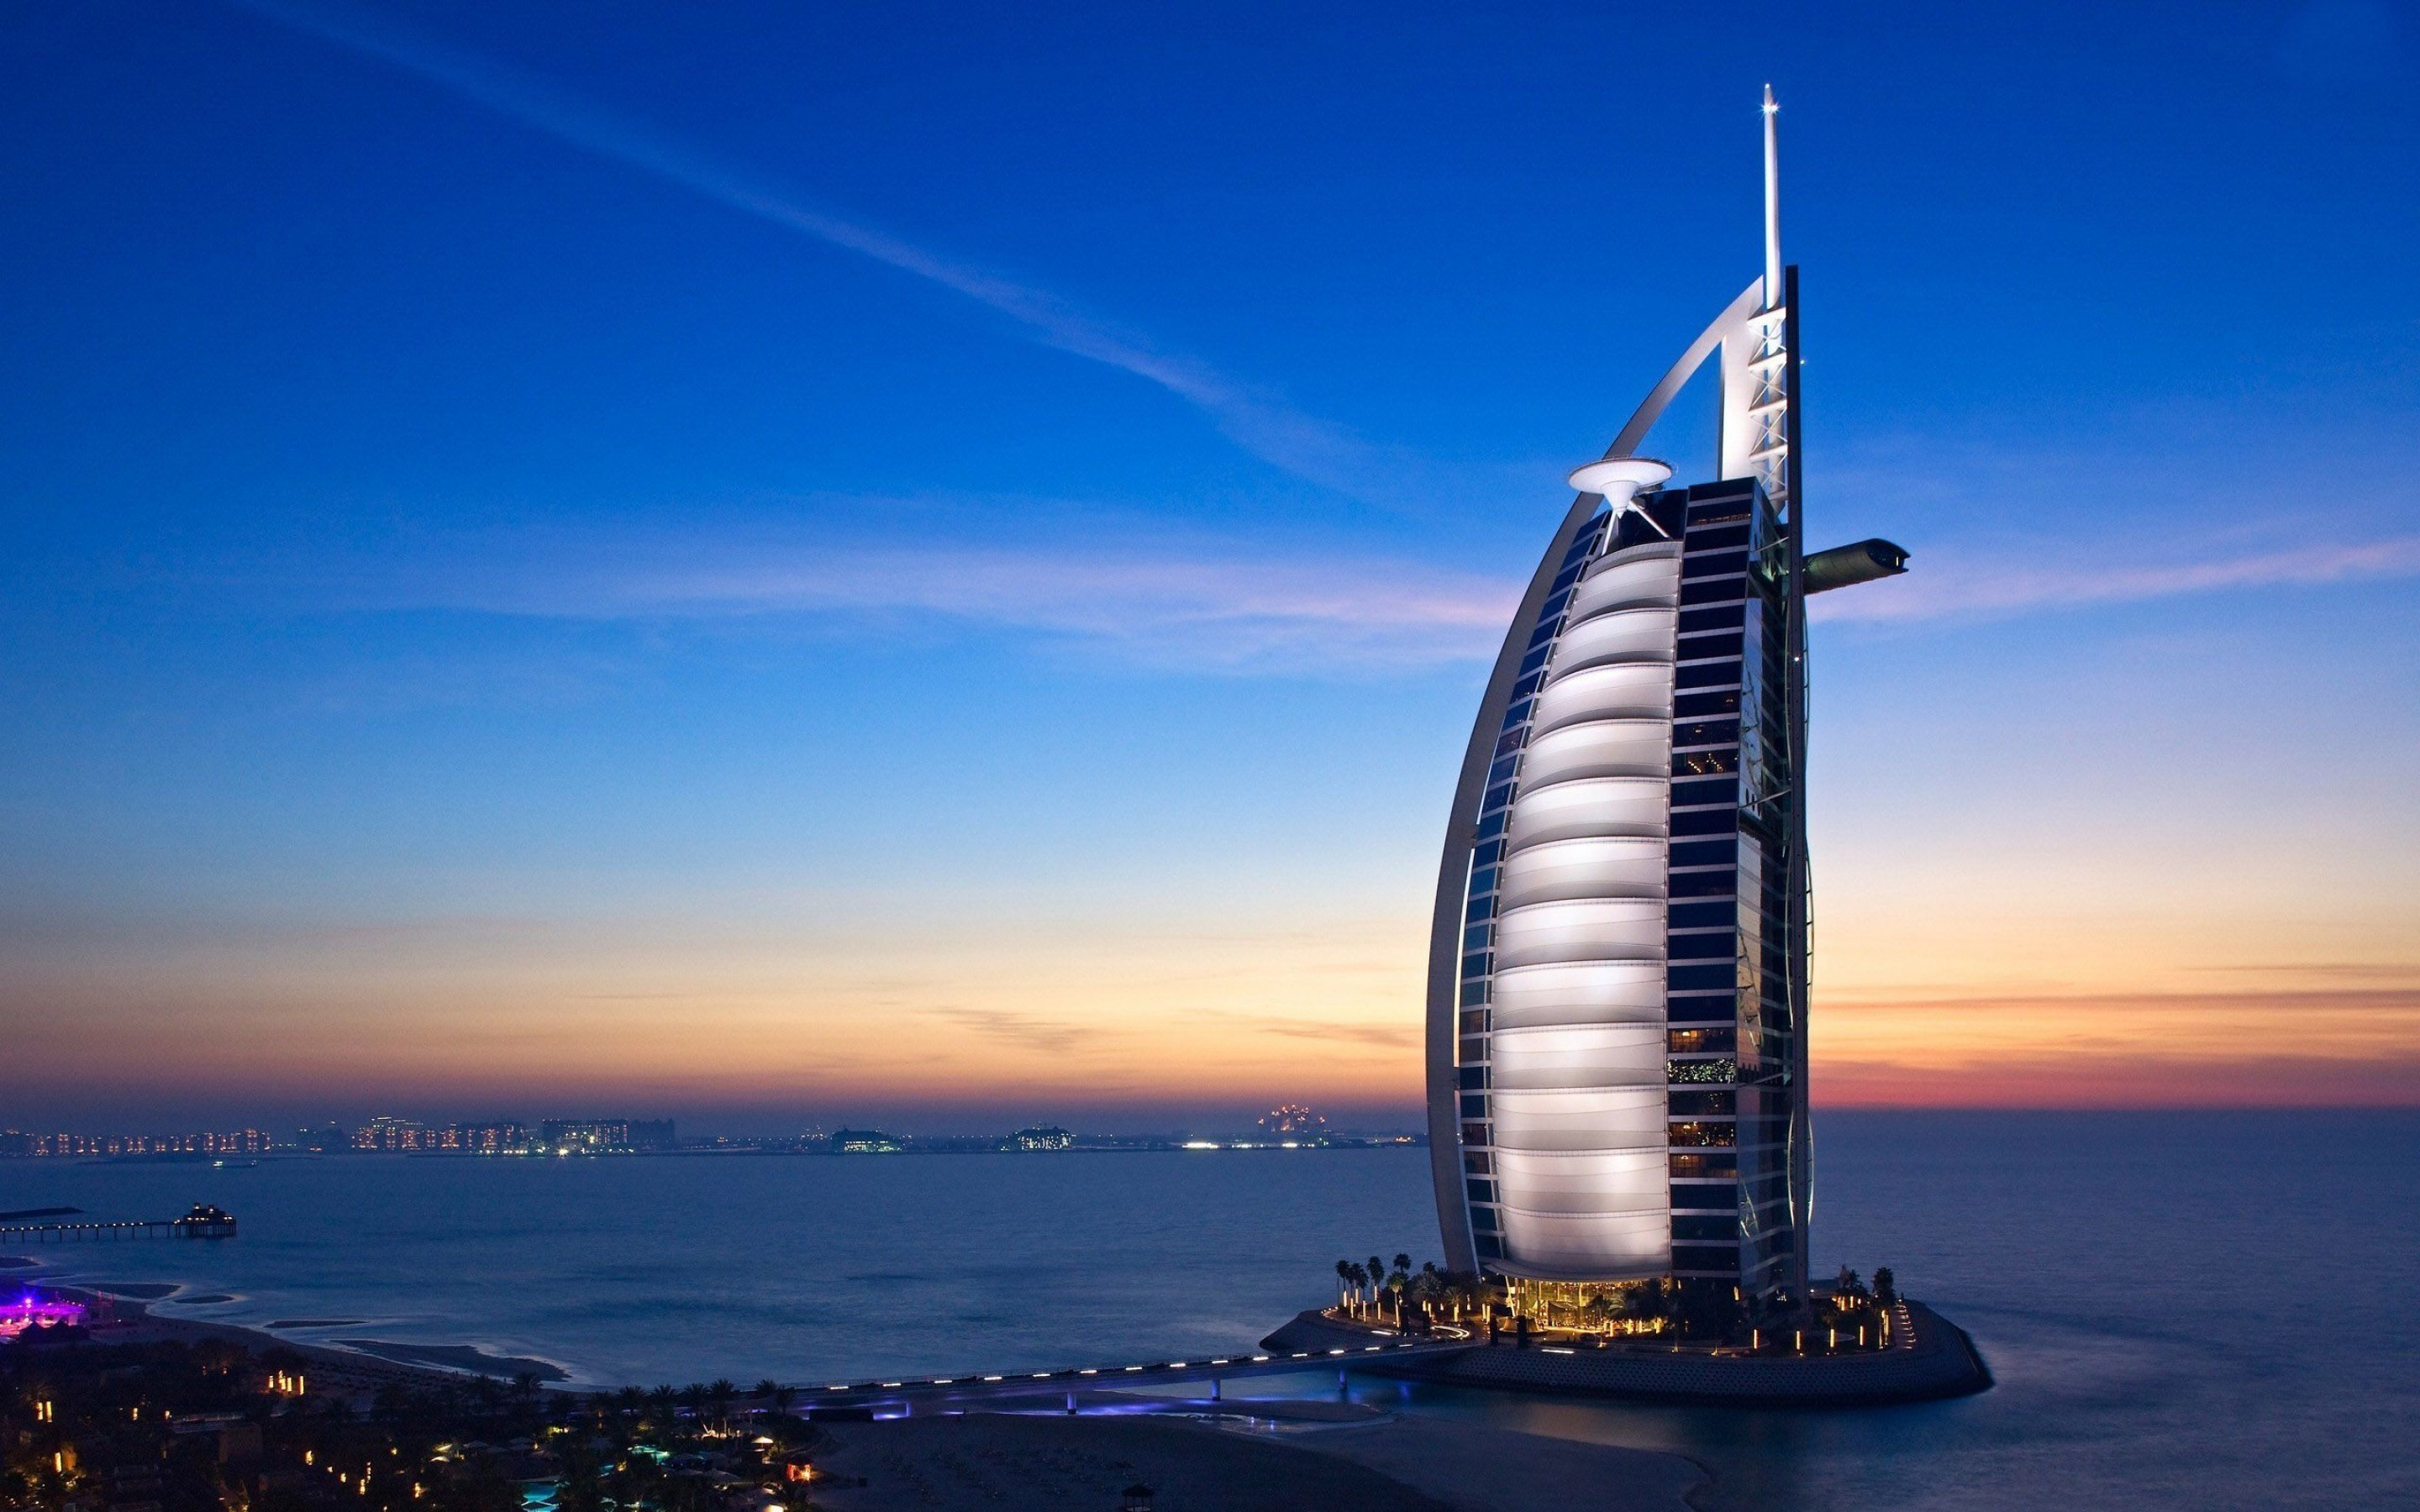 free dubai wallpapers show the real significance of its culture